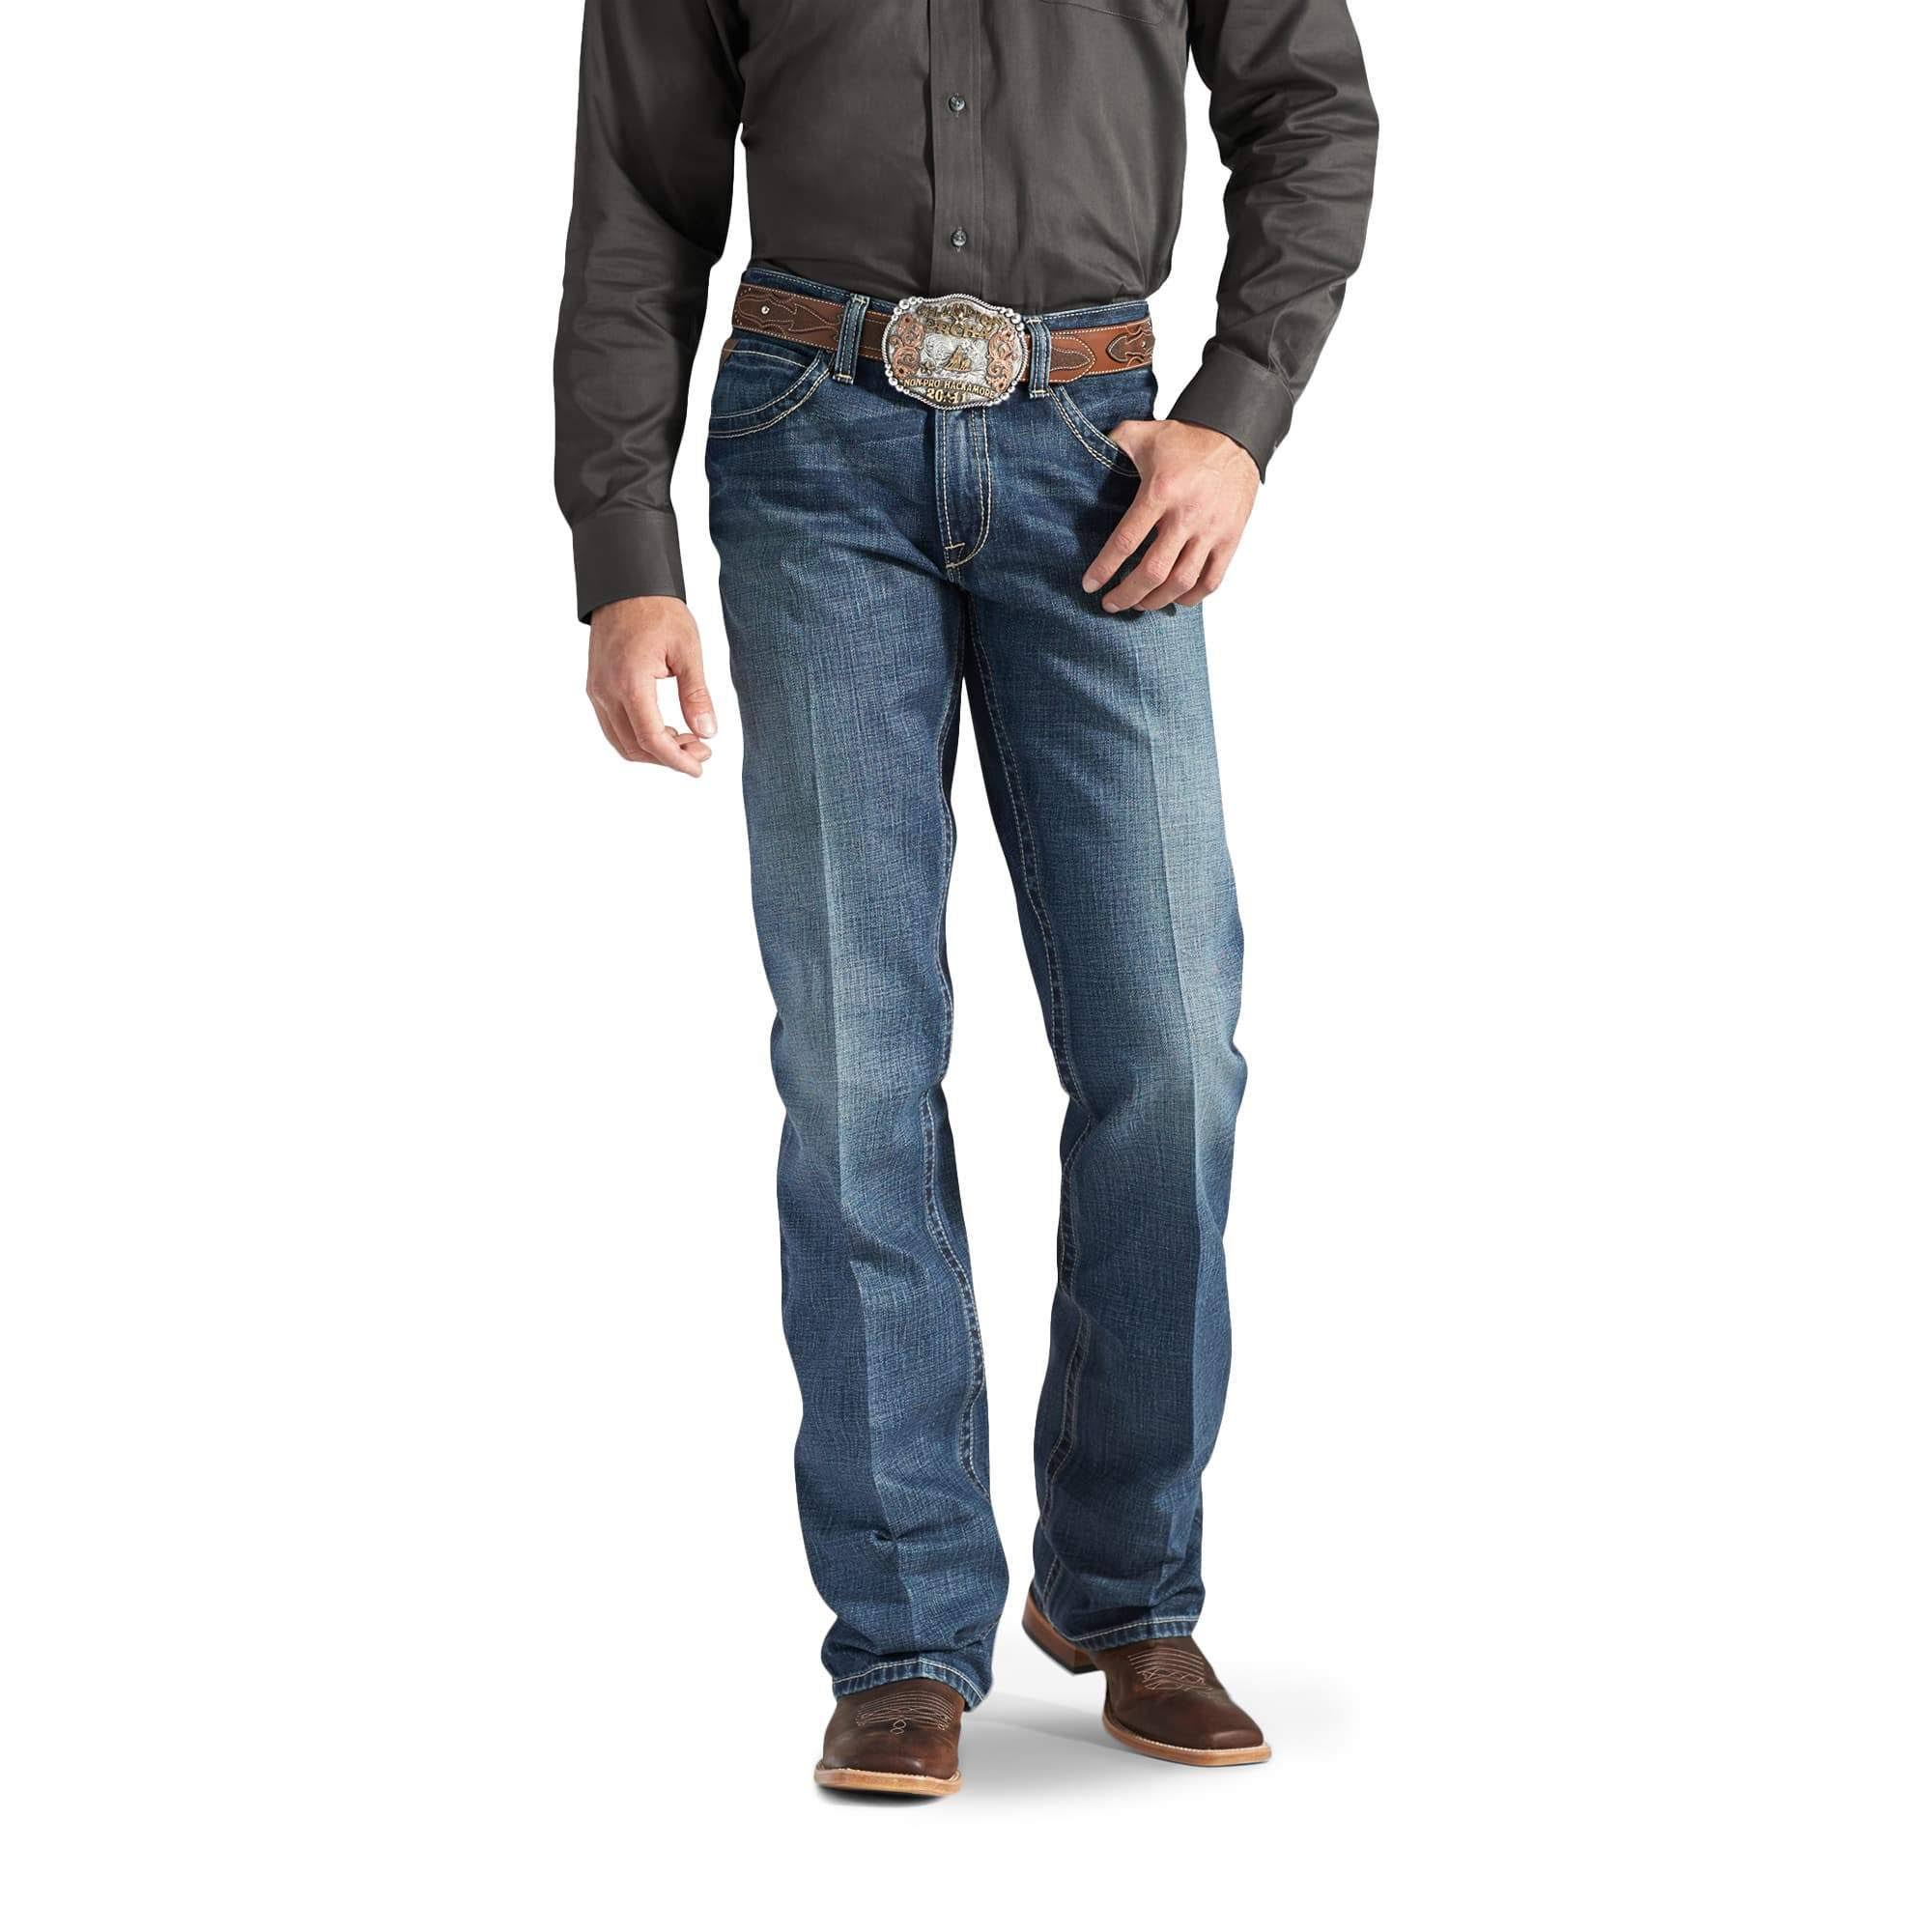 Ariat Men S M4 Low Rise Boot Cut Jean - Gulch